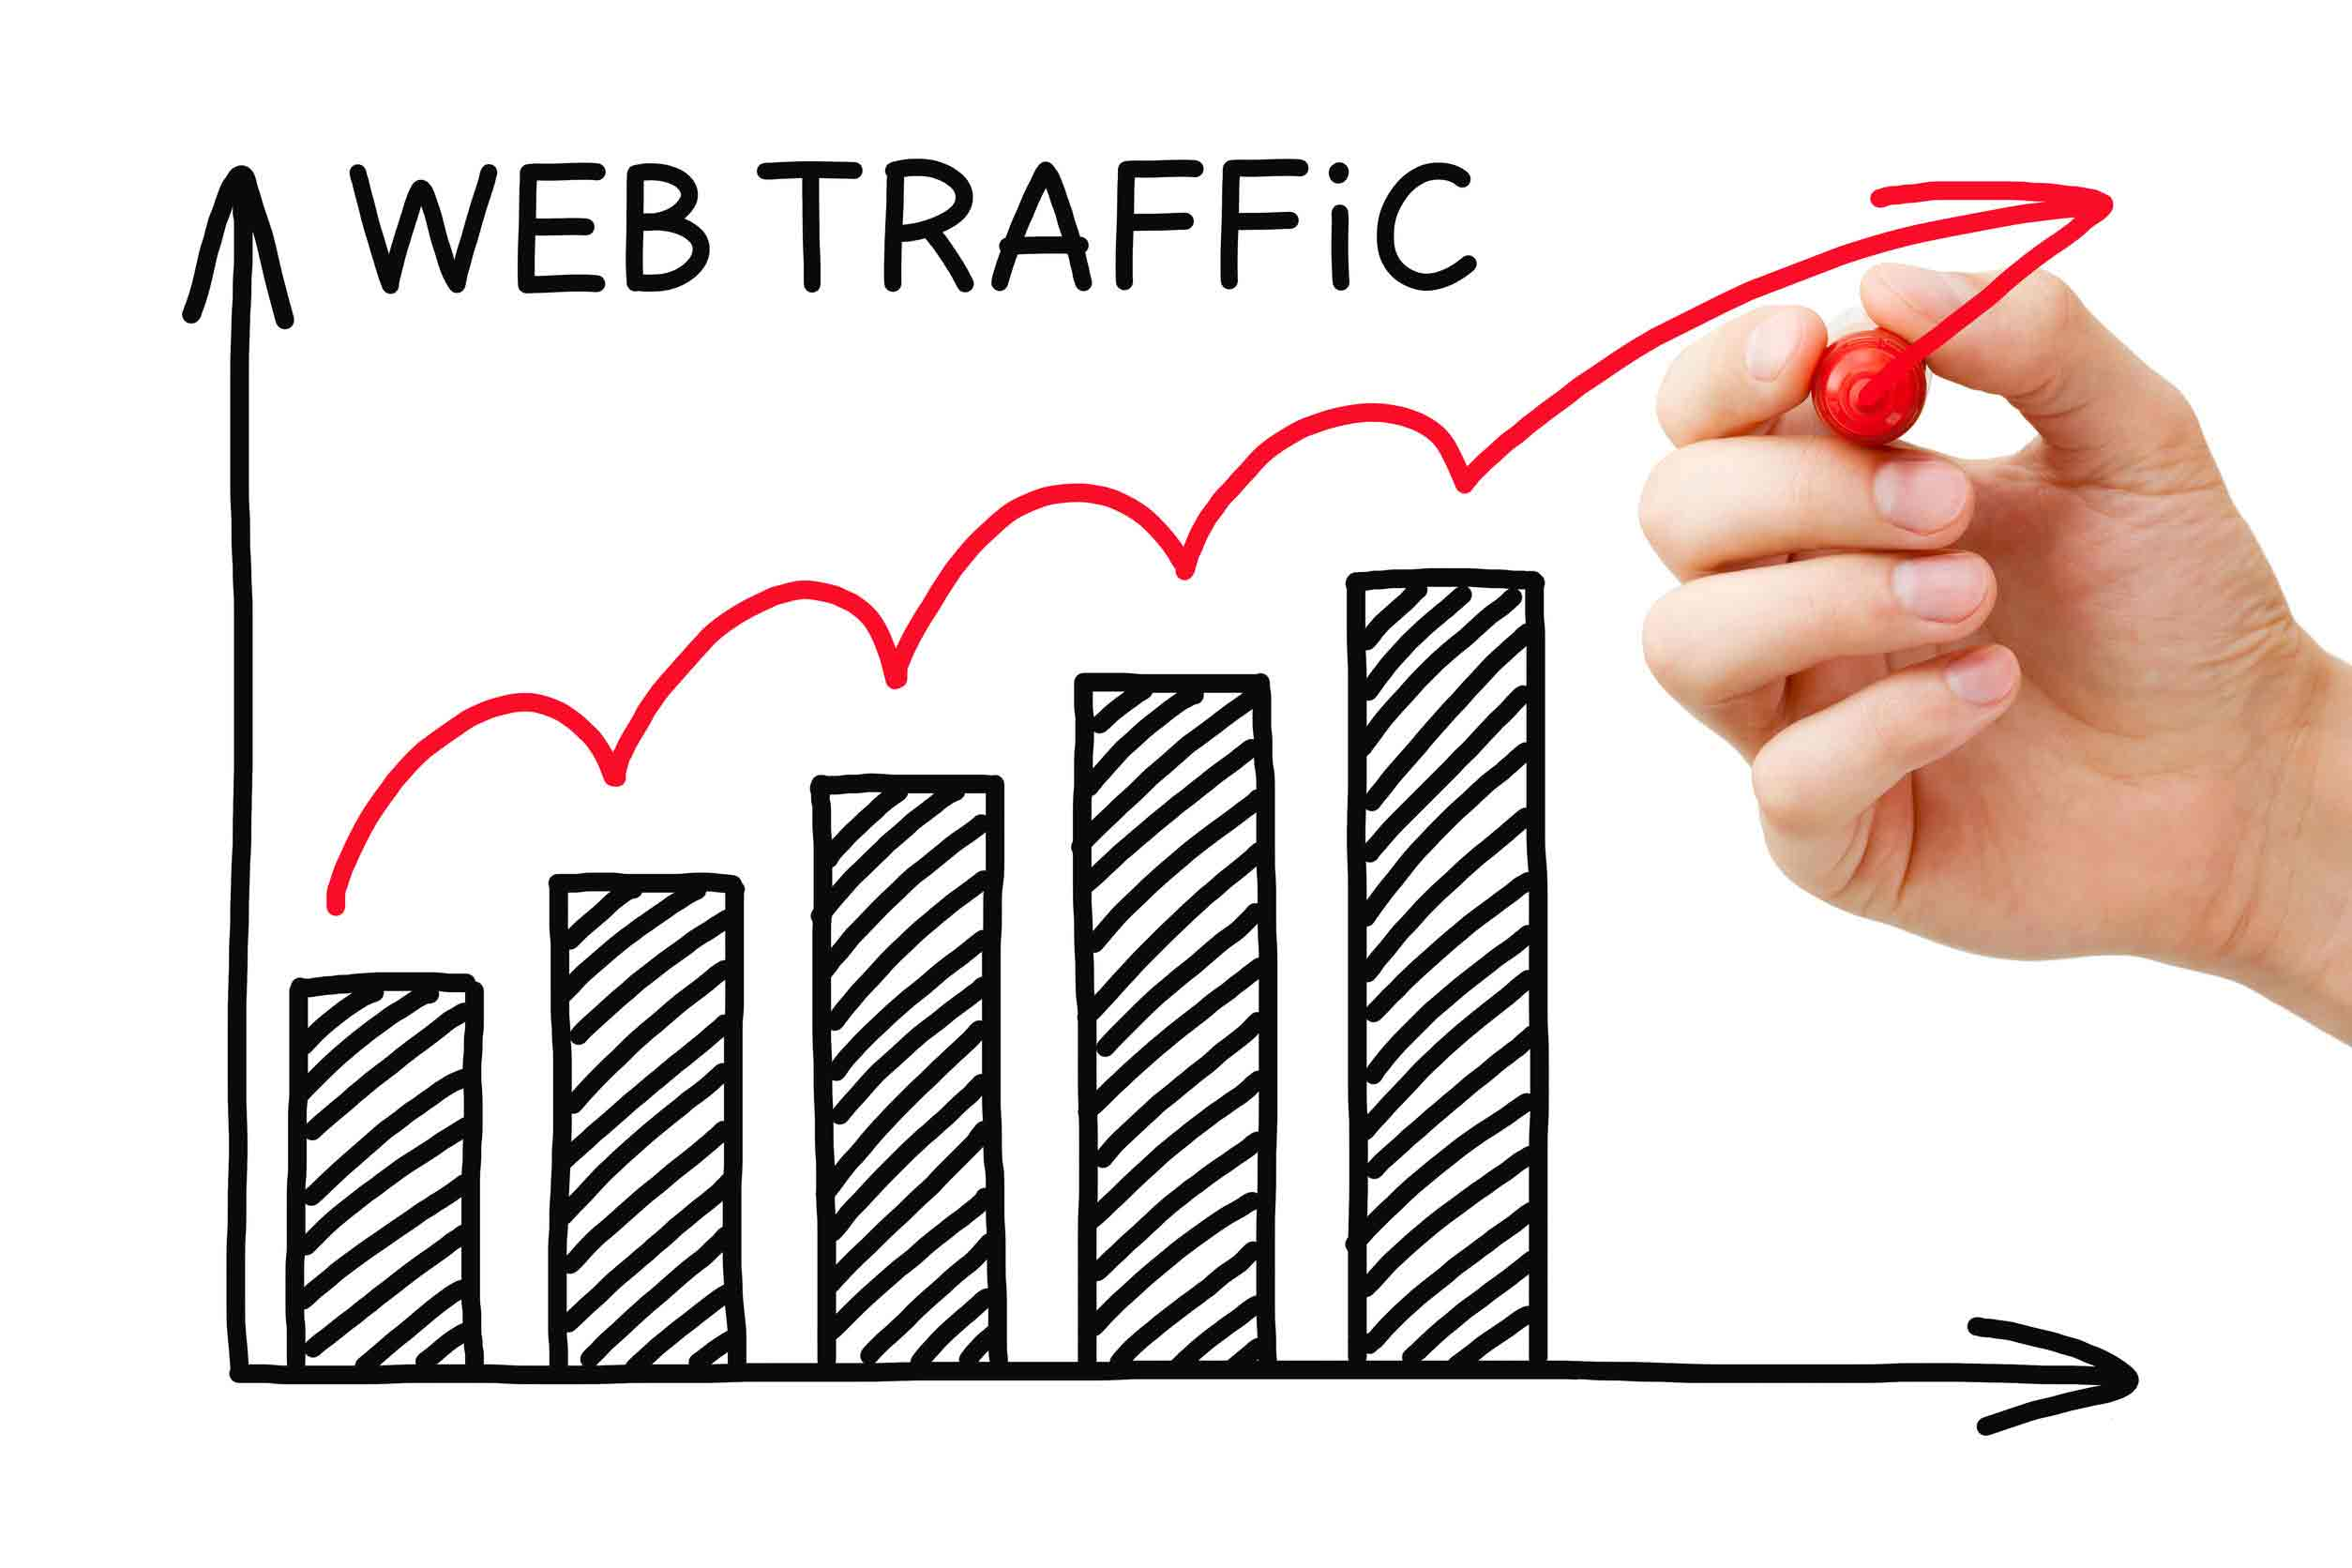 increase-website-traffic-sonority-group-web.jpg